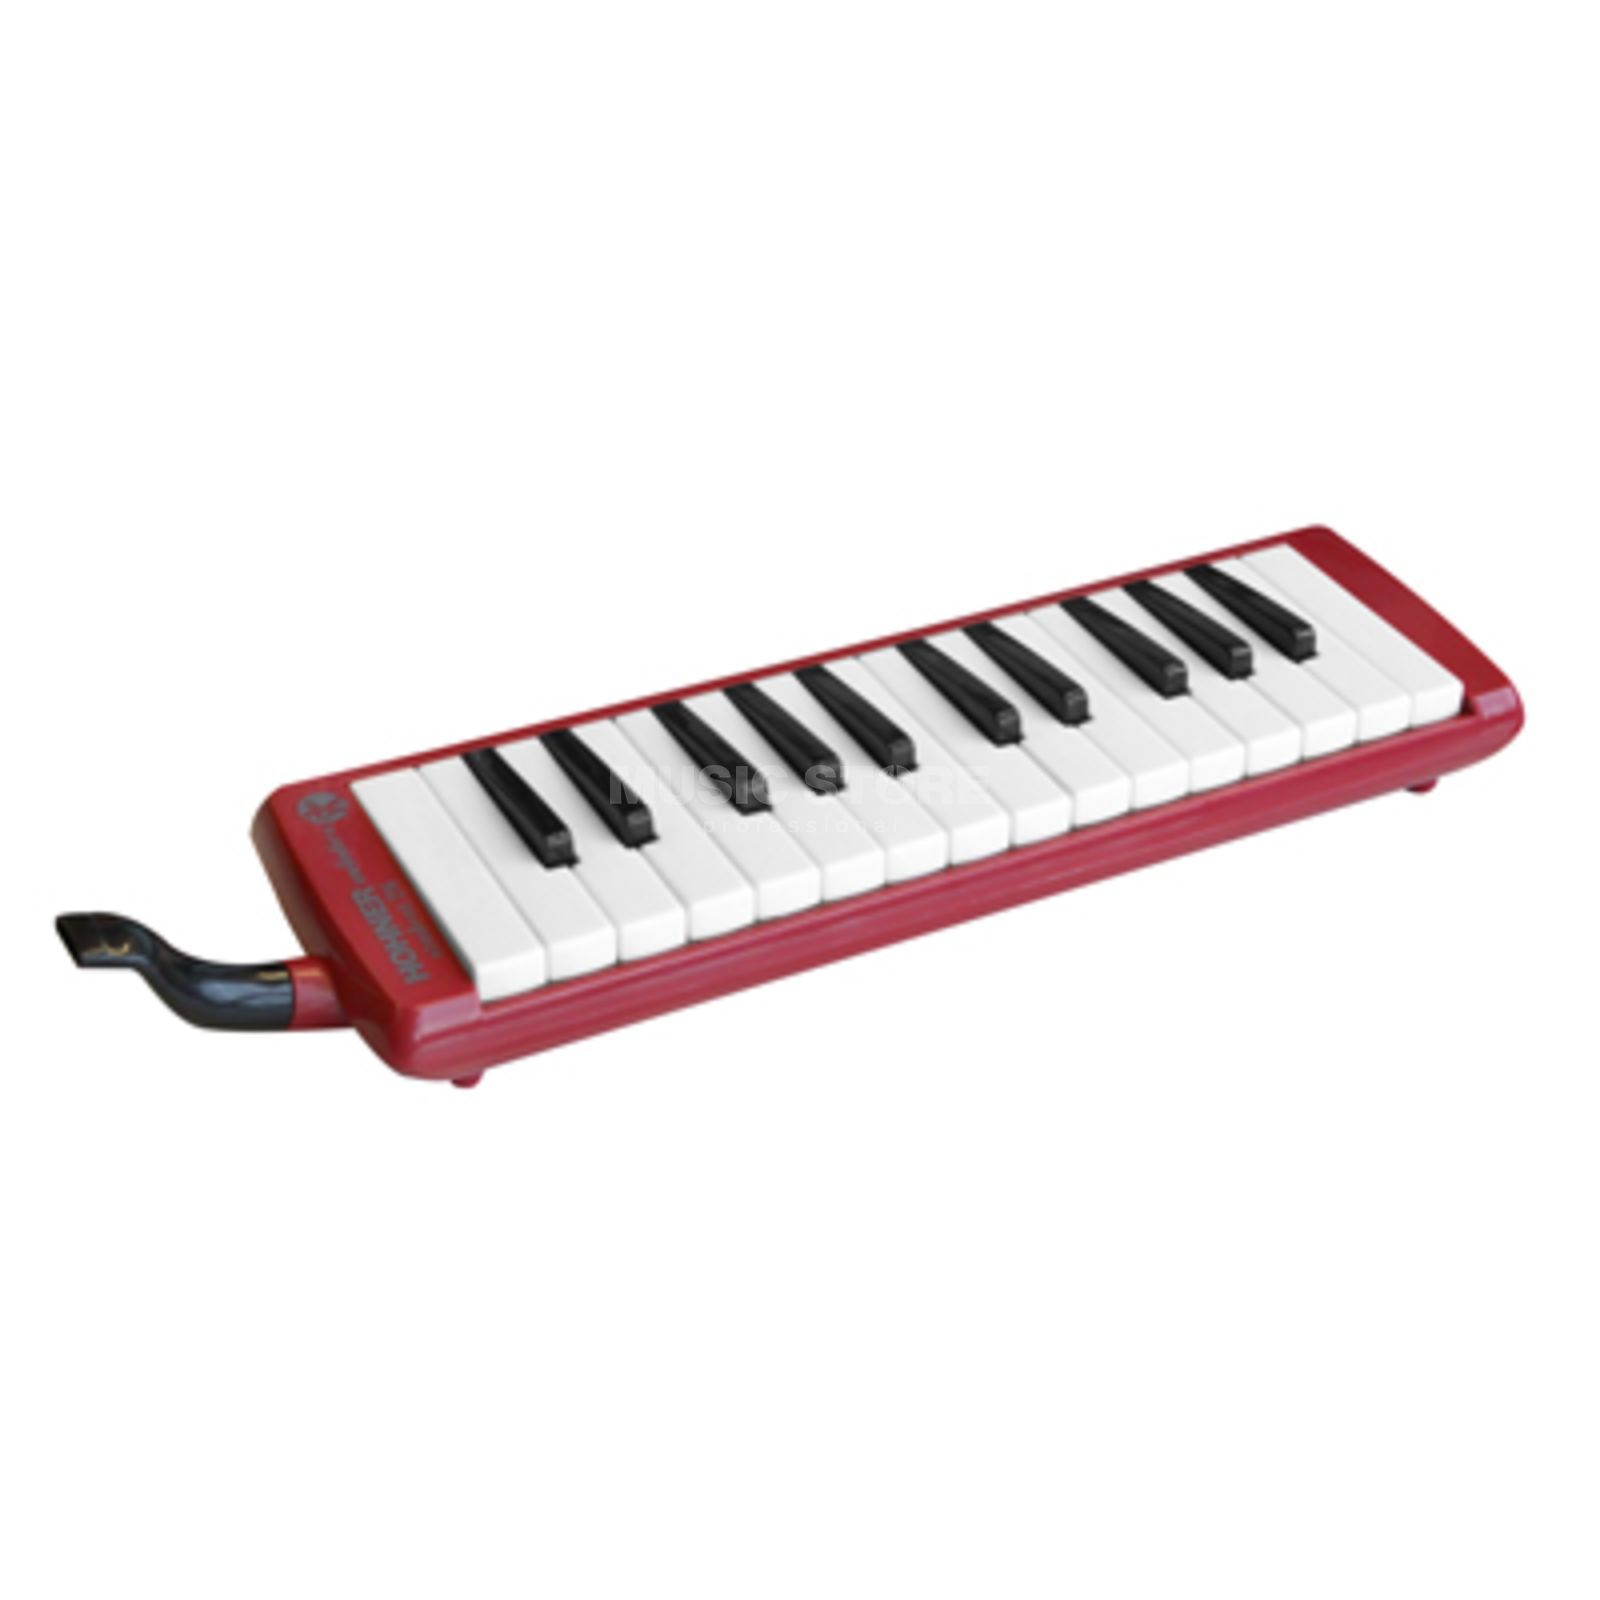 Hohner Student Melodica 26 - Red incl. Bag and Accessories Immagine prodotto